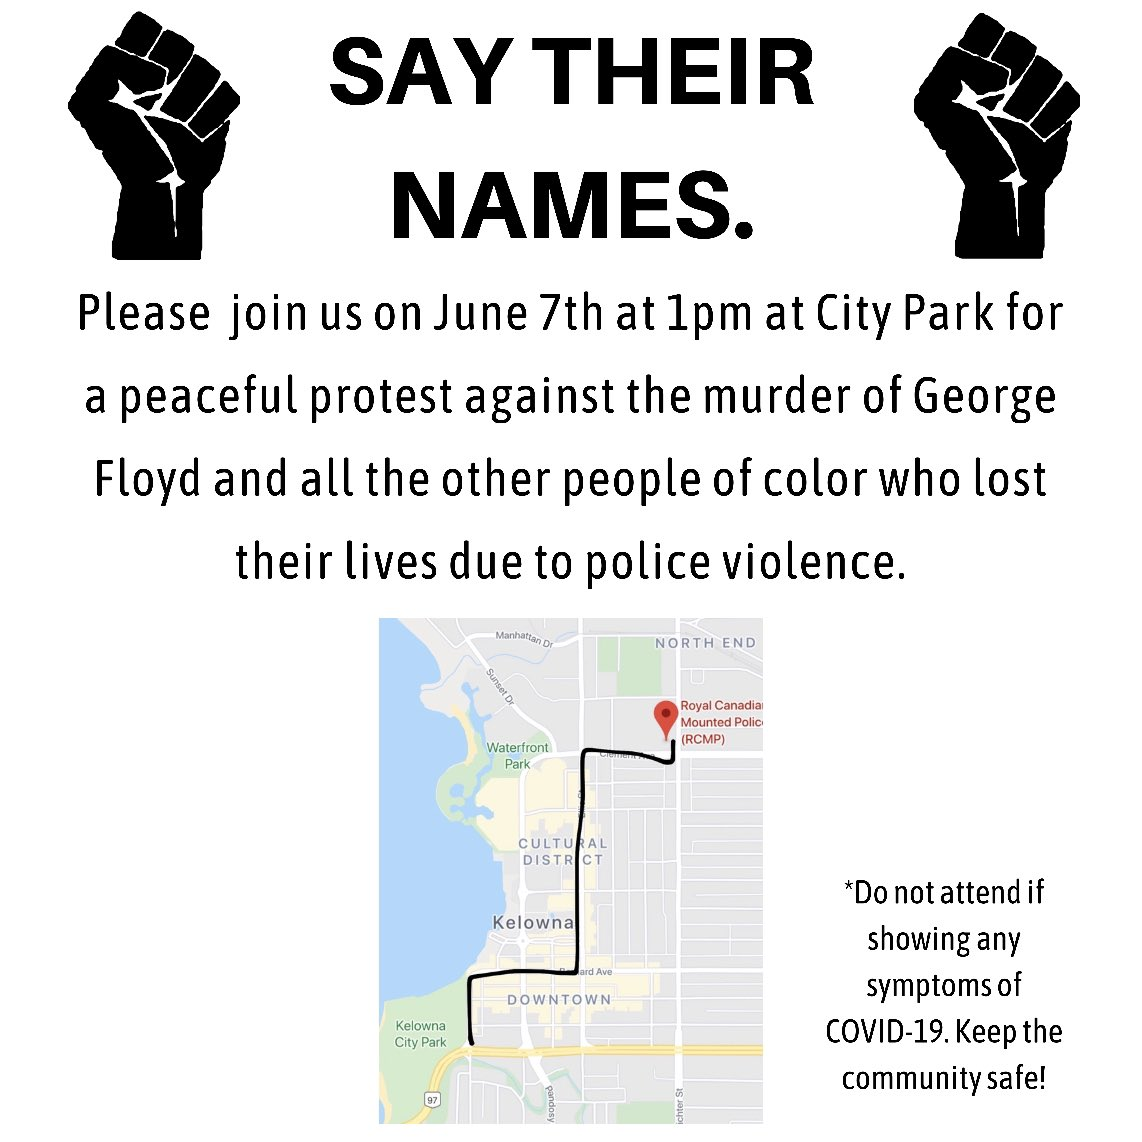 if youre in #kelowna please consider coming to the protest!! repost and share if you can:) pic.twitter.com/3UjU3wYLEv